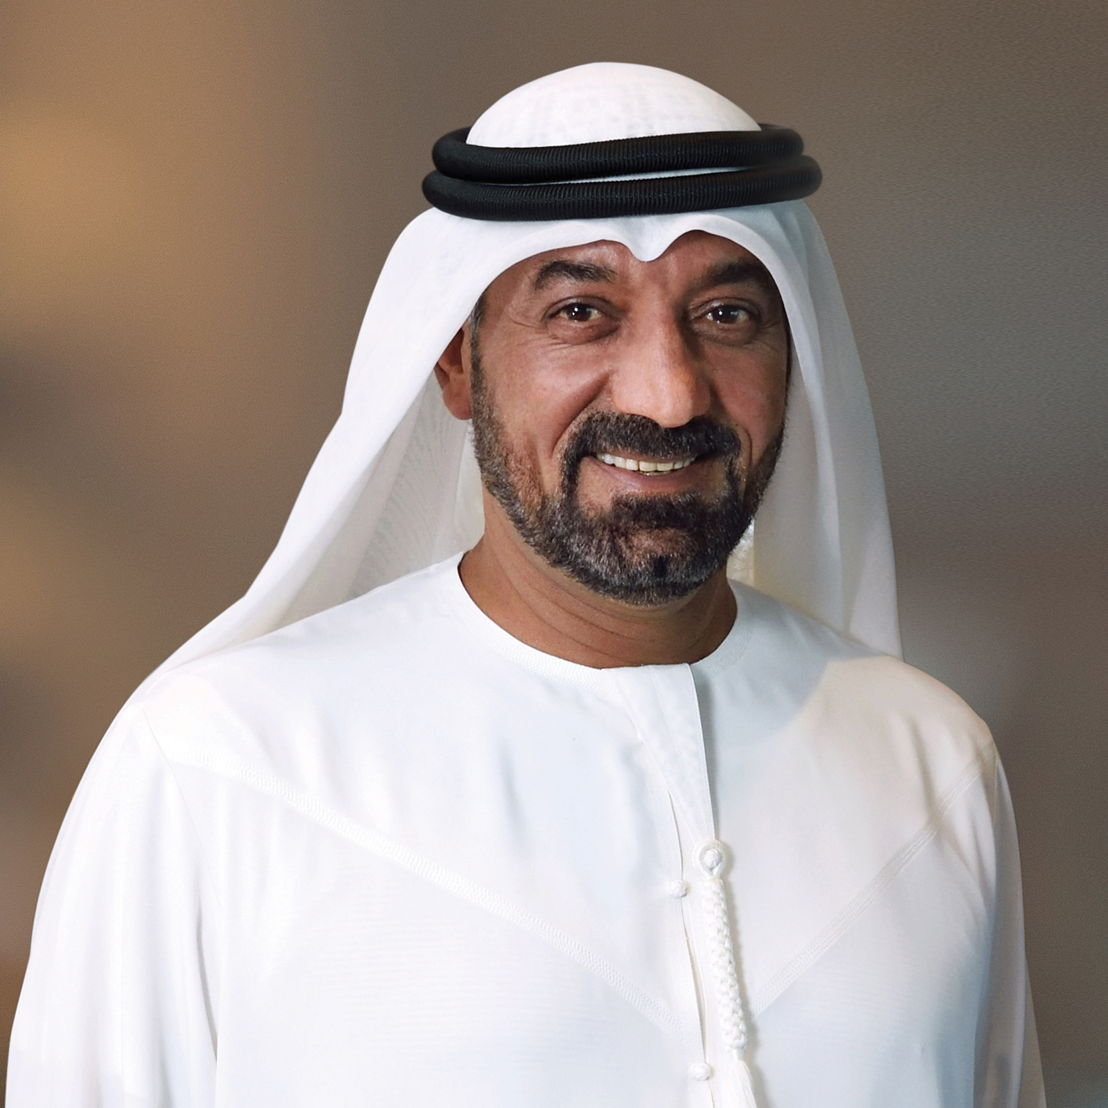 1.	HH Sheikh Ahmed bin Saeed Al Maktoum, Chairman and Chief Executive, Emirates airline and Group, announced Emirates and dnata's 2017/18 financial performance, including the Group's 30th consecutive year of profit.